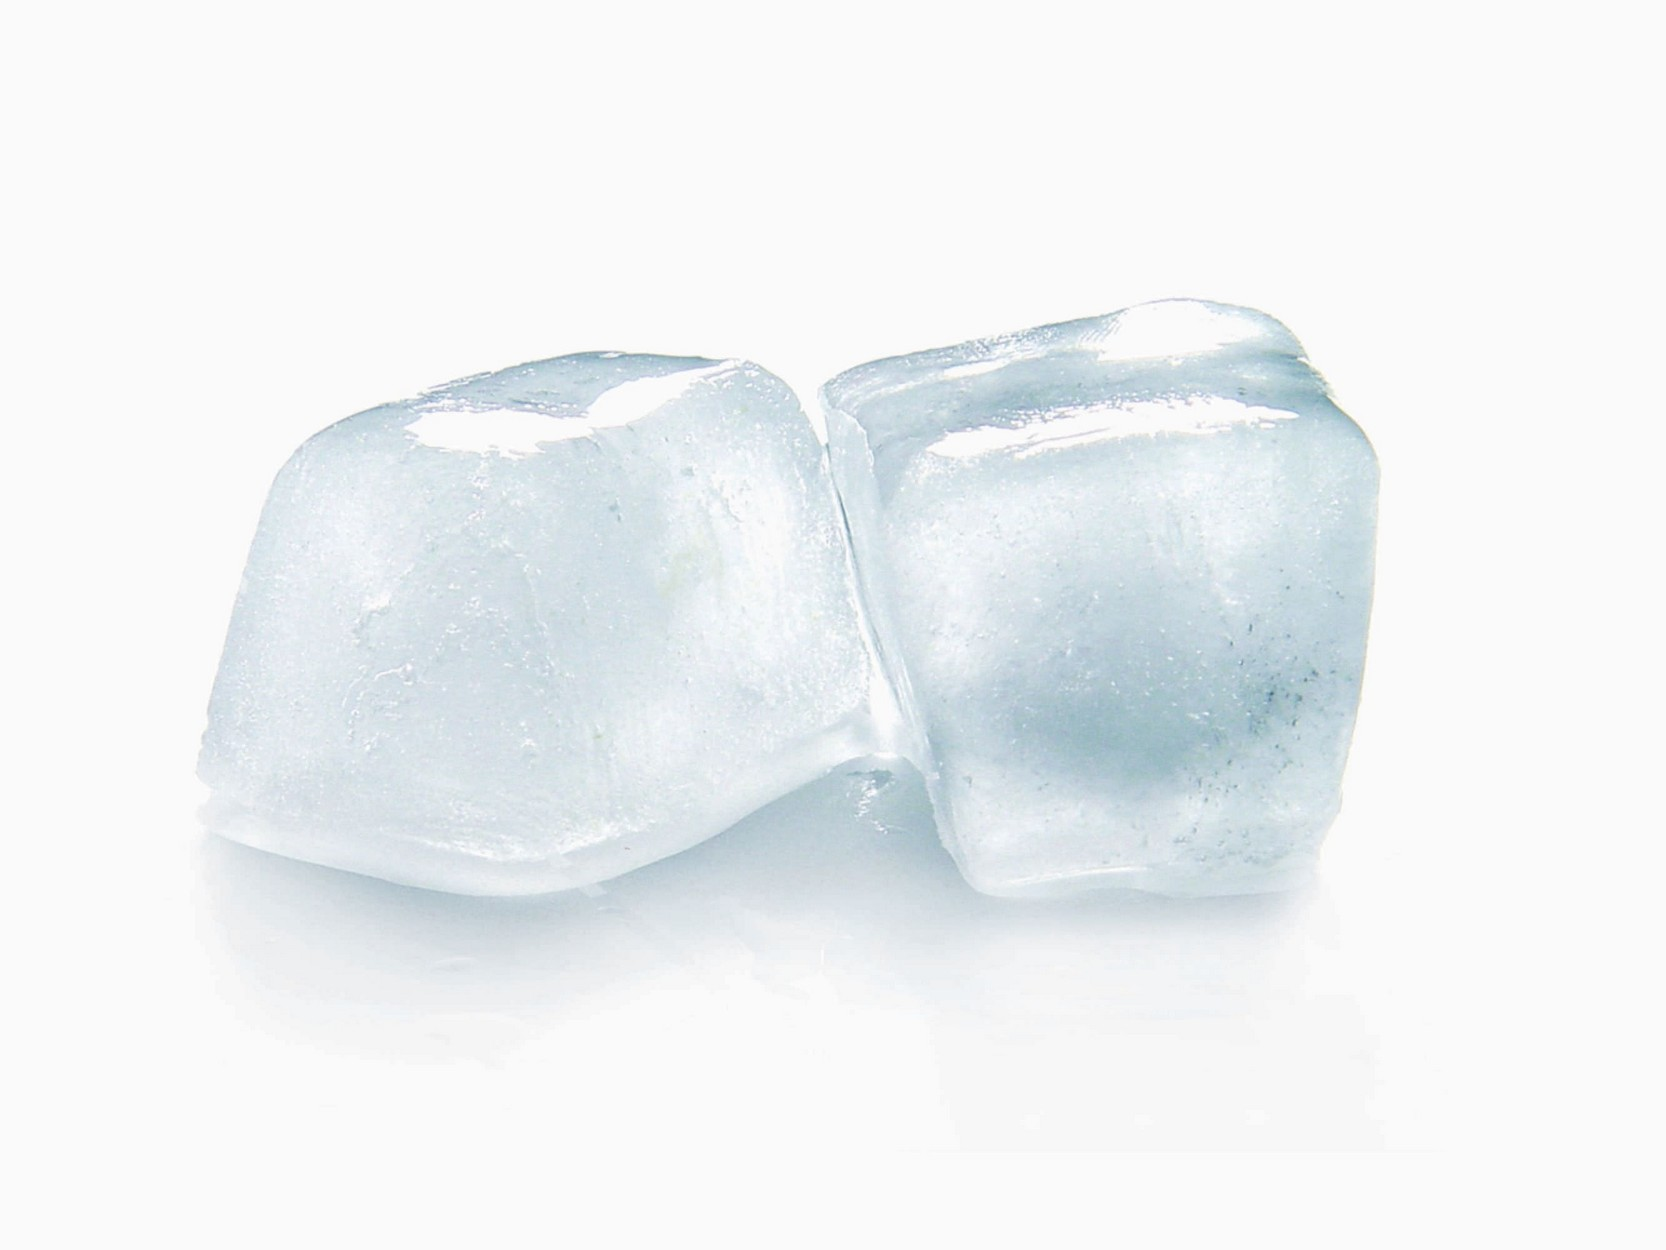 two ice cubes on a white background / ice can help pain associated with sunburn.